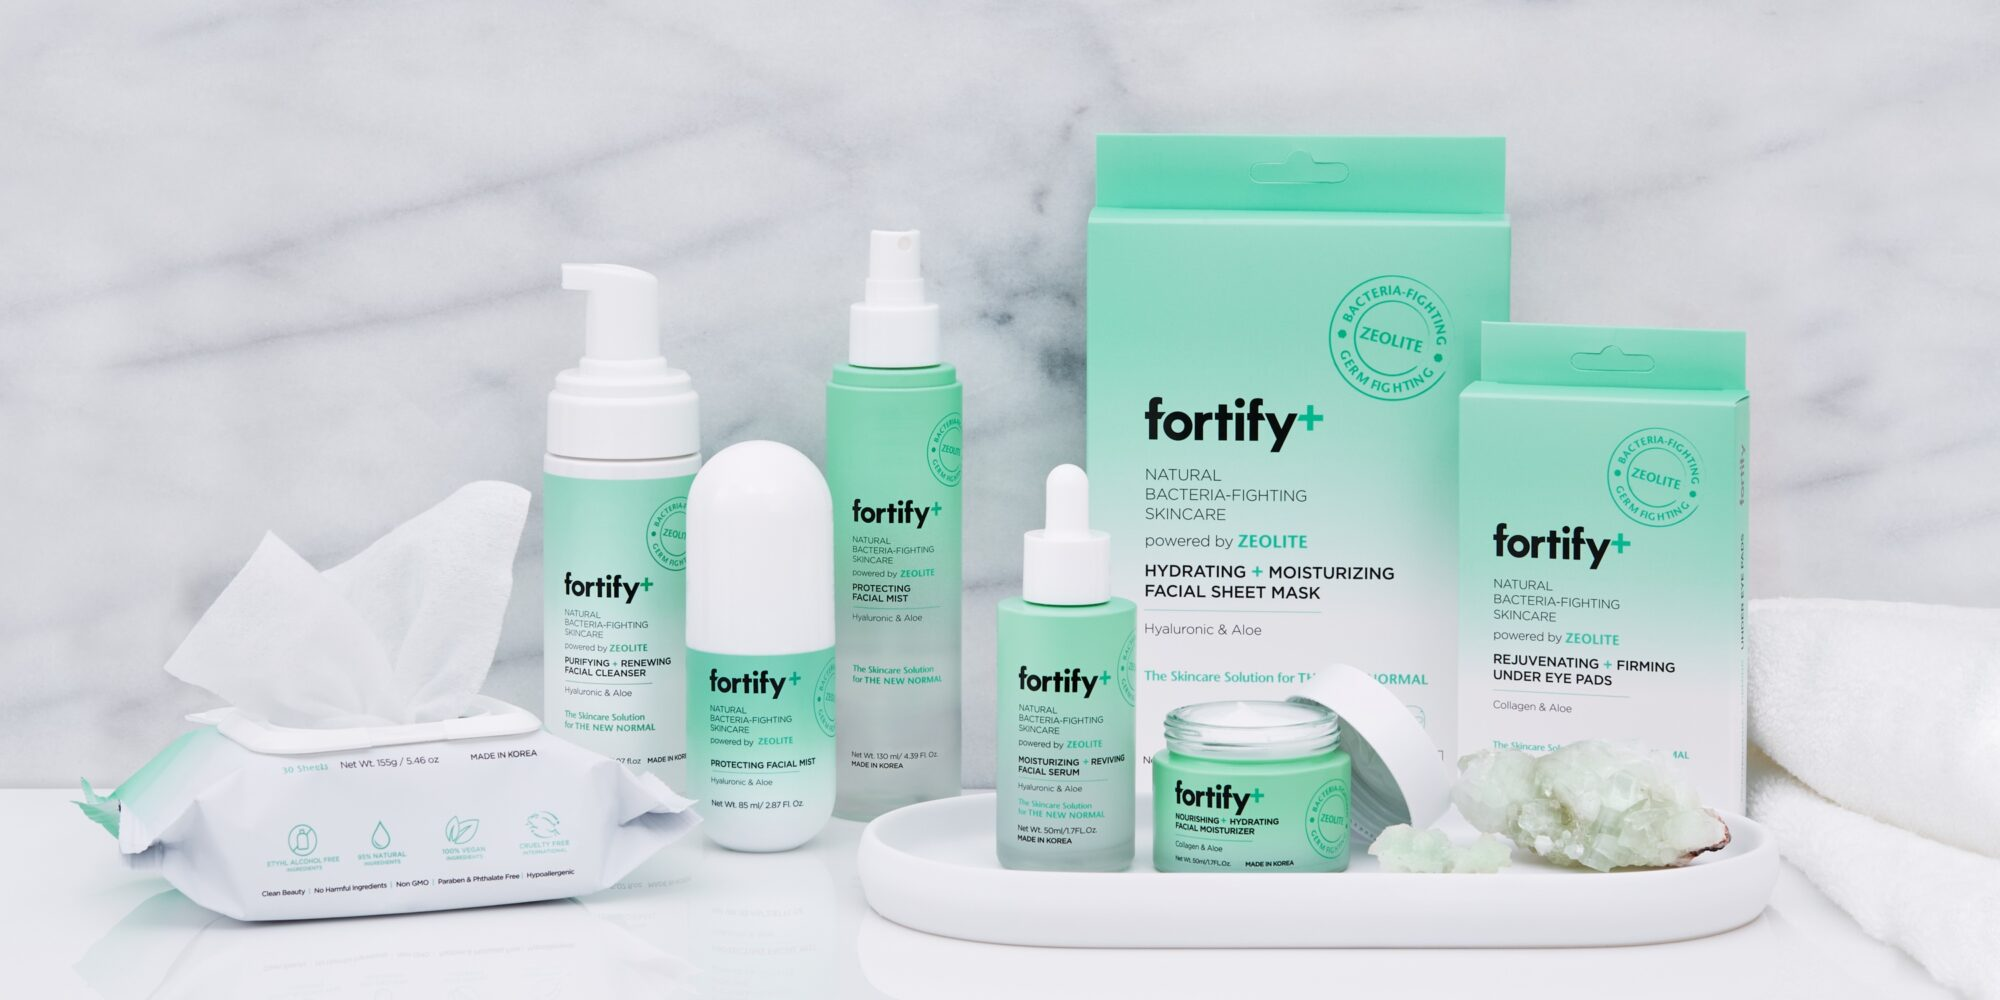 Skincare For The New Normal: Fortify+ Is Fighting Bacteria While Providing Beauty Benefits